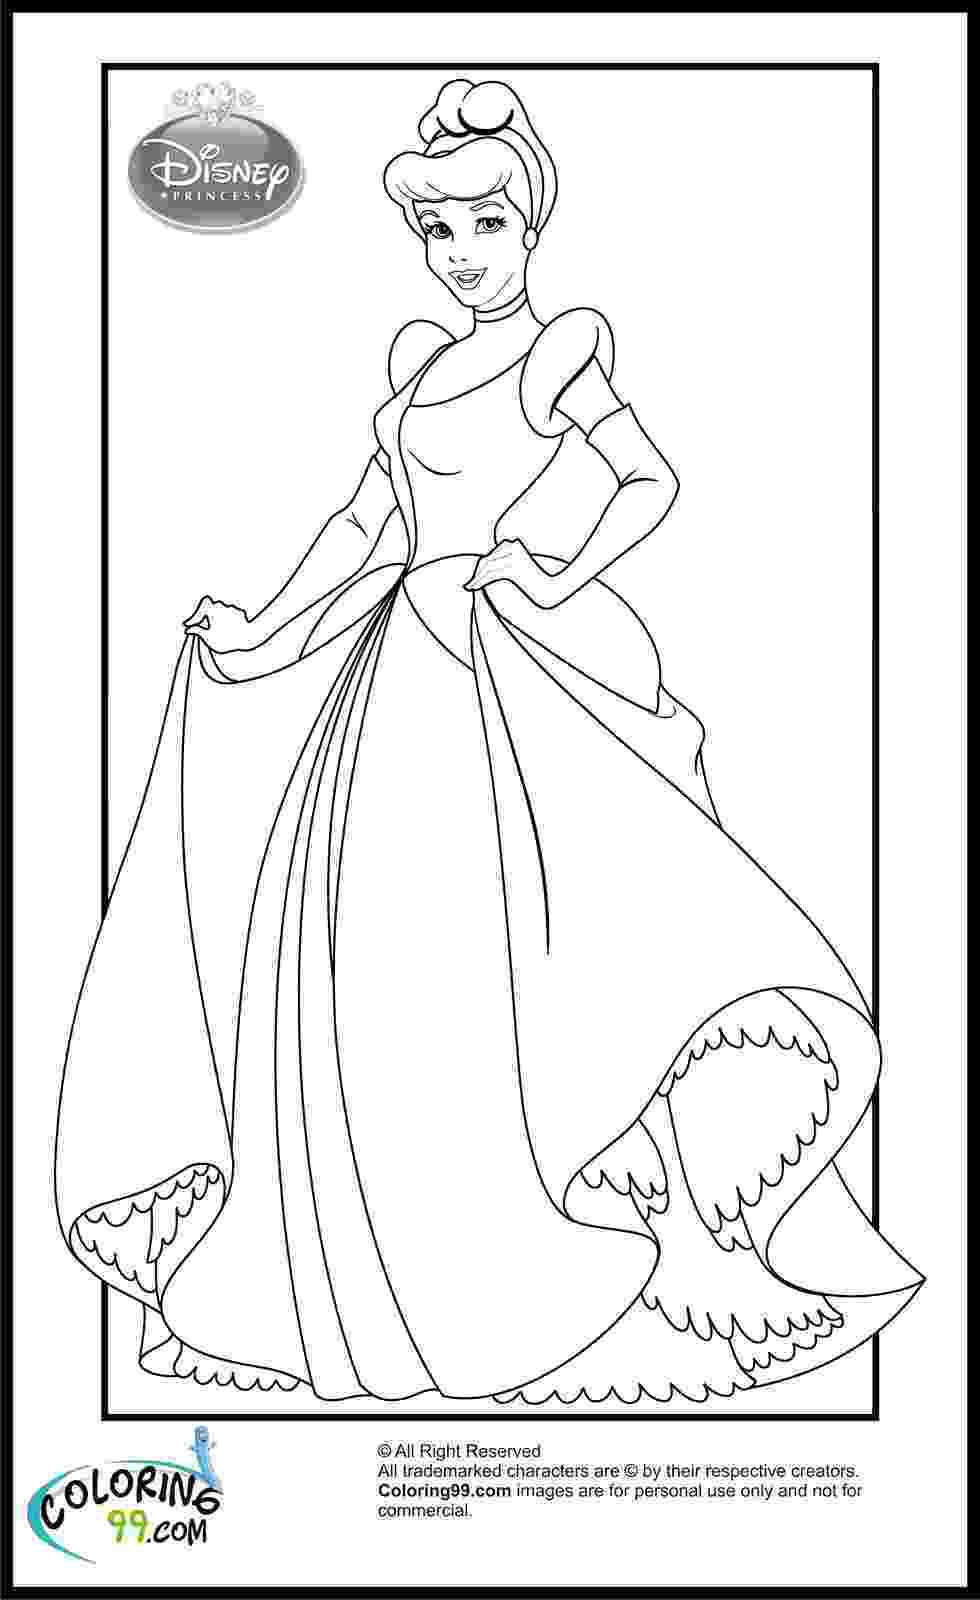 colouring templates disney sebastian and ariel coloring pages for girls printable disney templates colouring